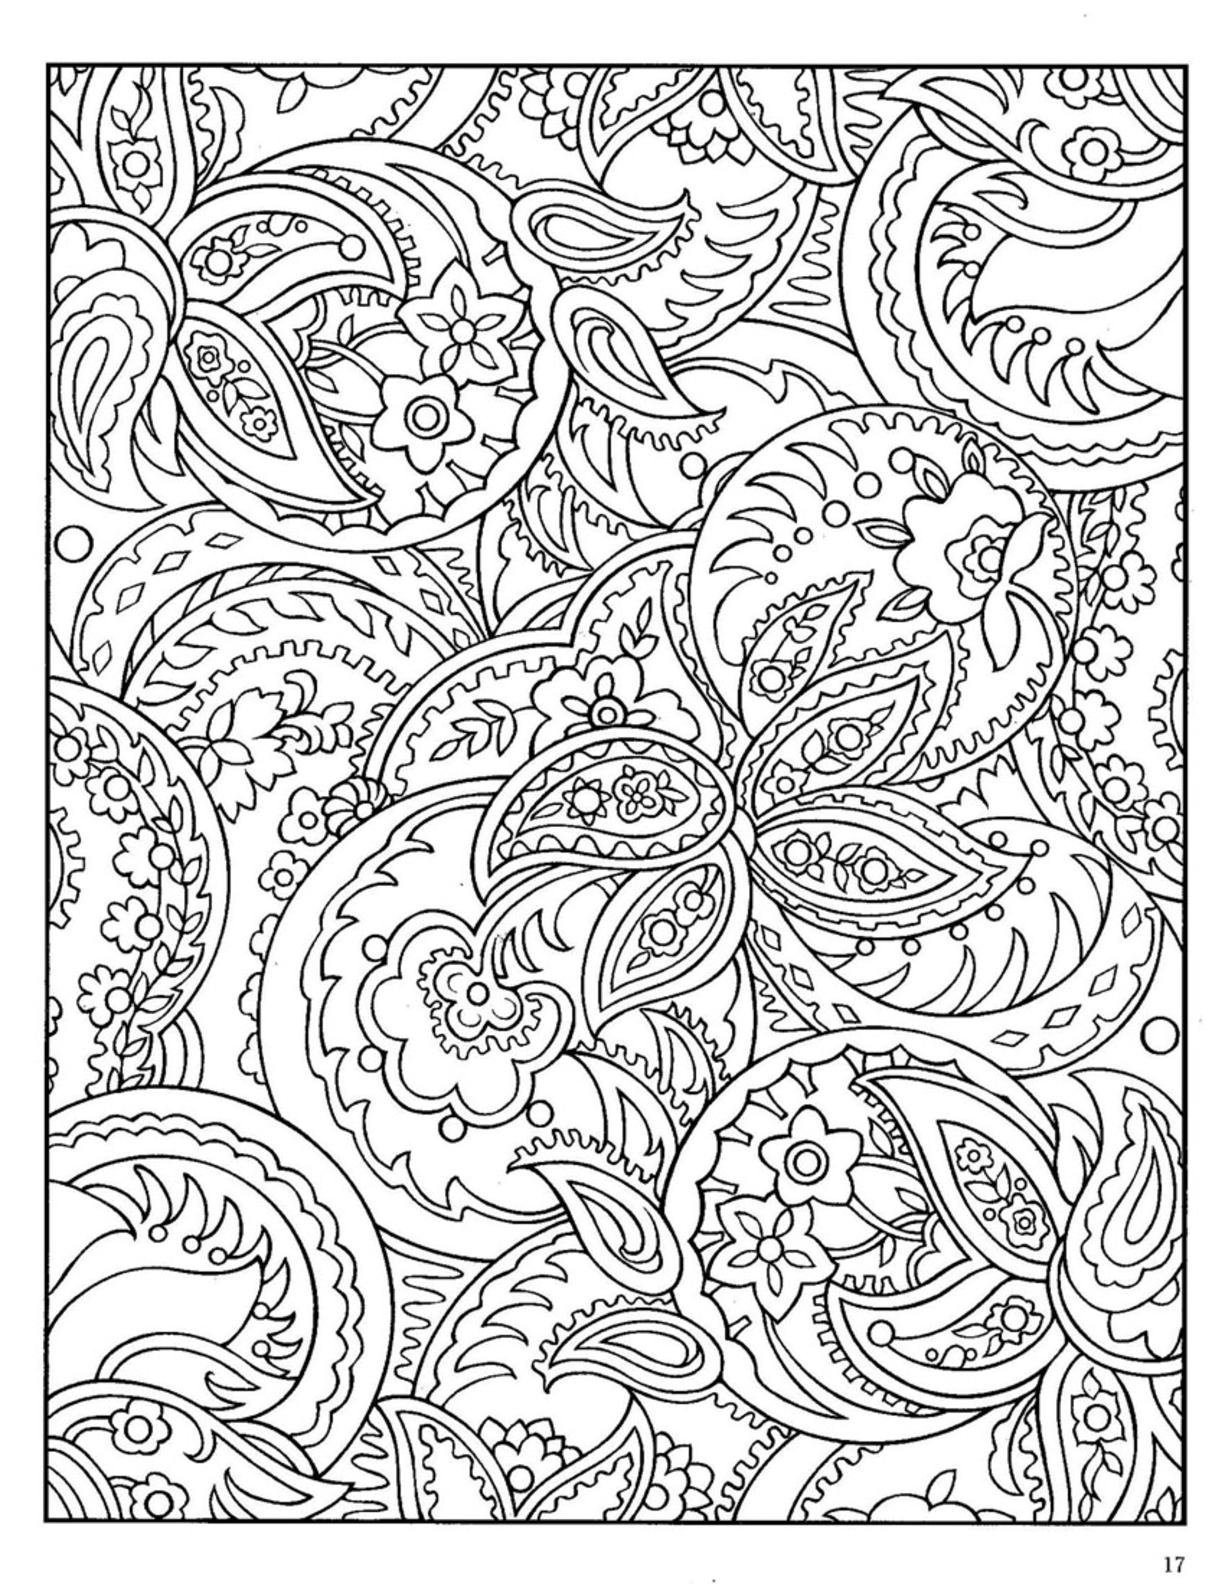 free downloadable coloring pages free difficult coloring pages for adults coloring pages downloadable free